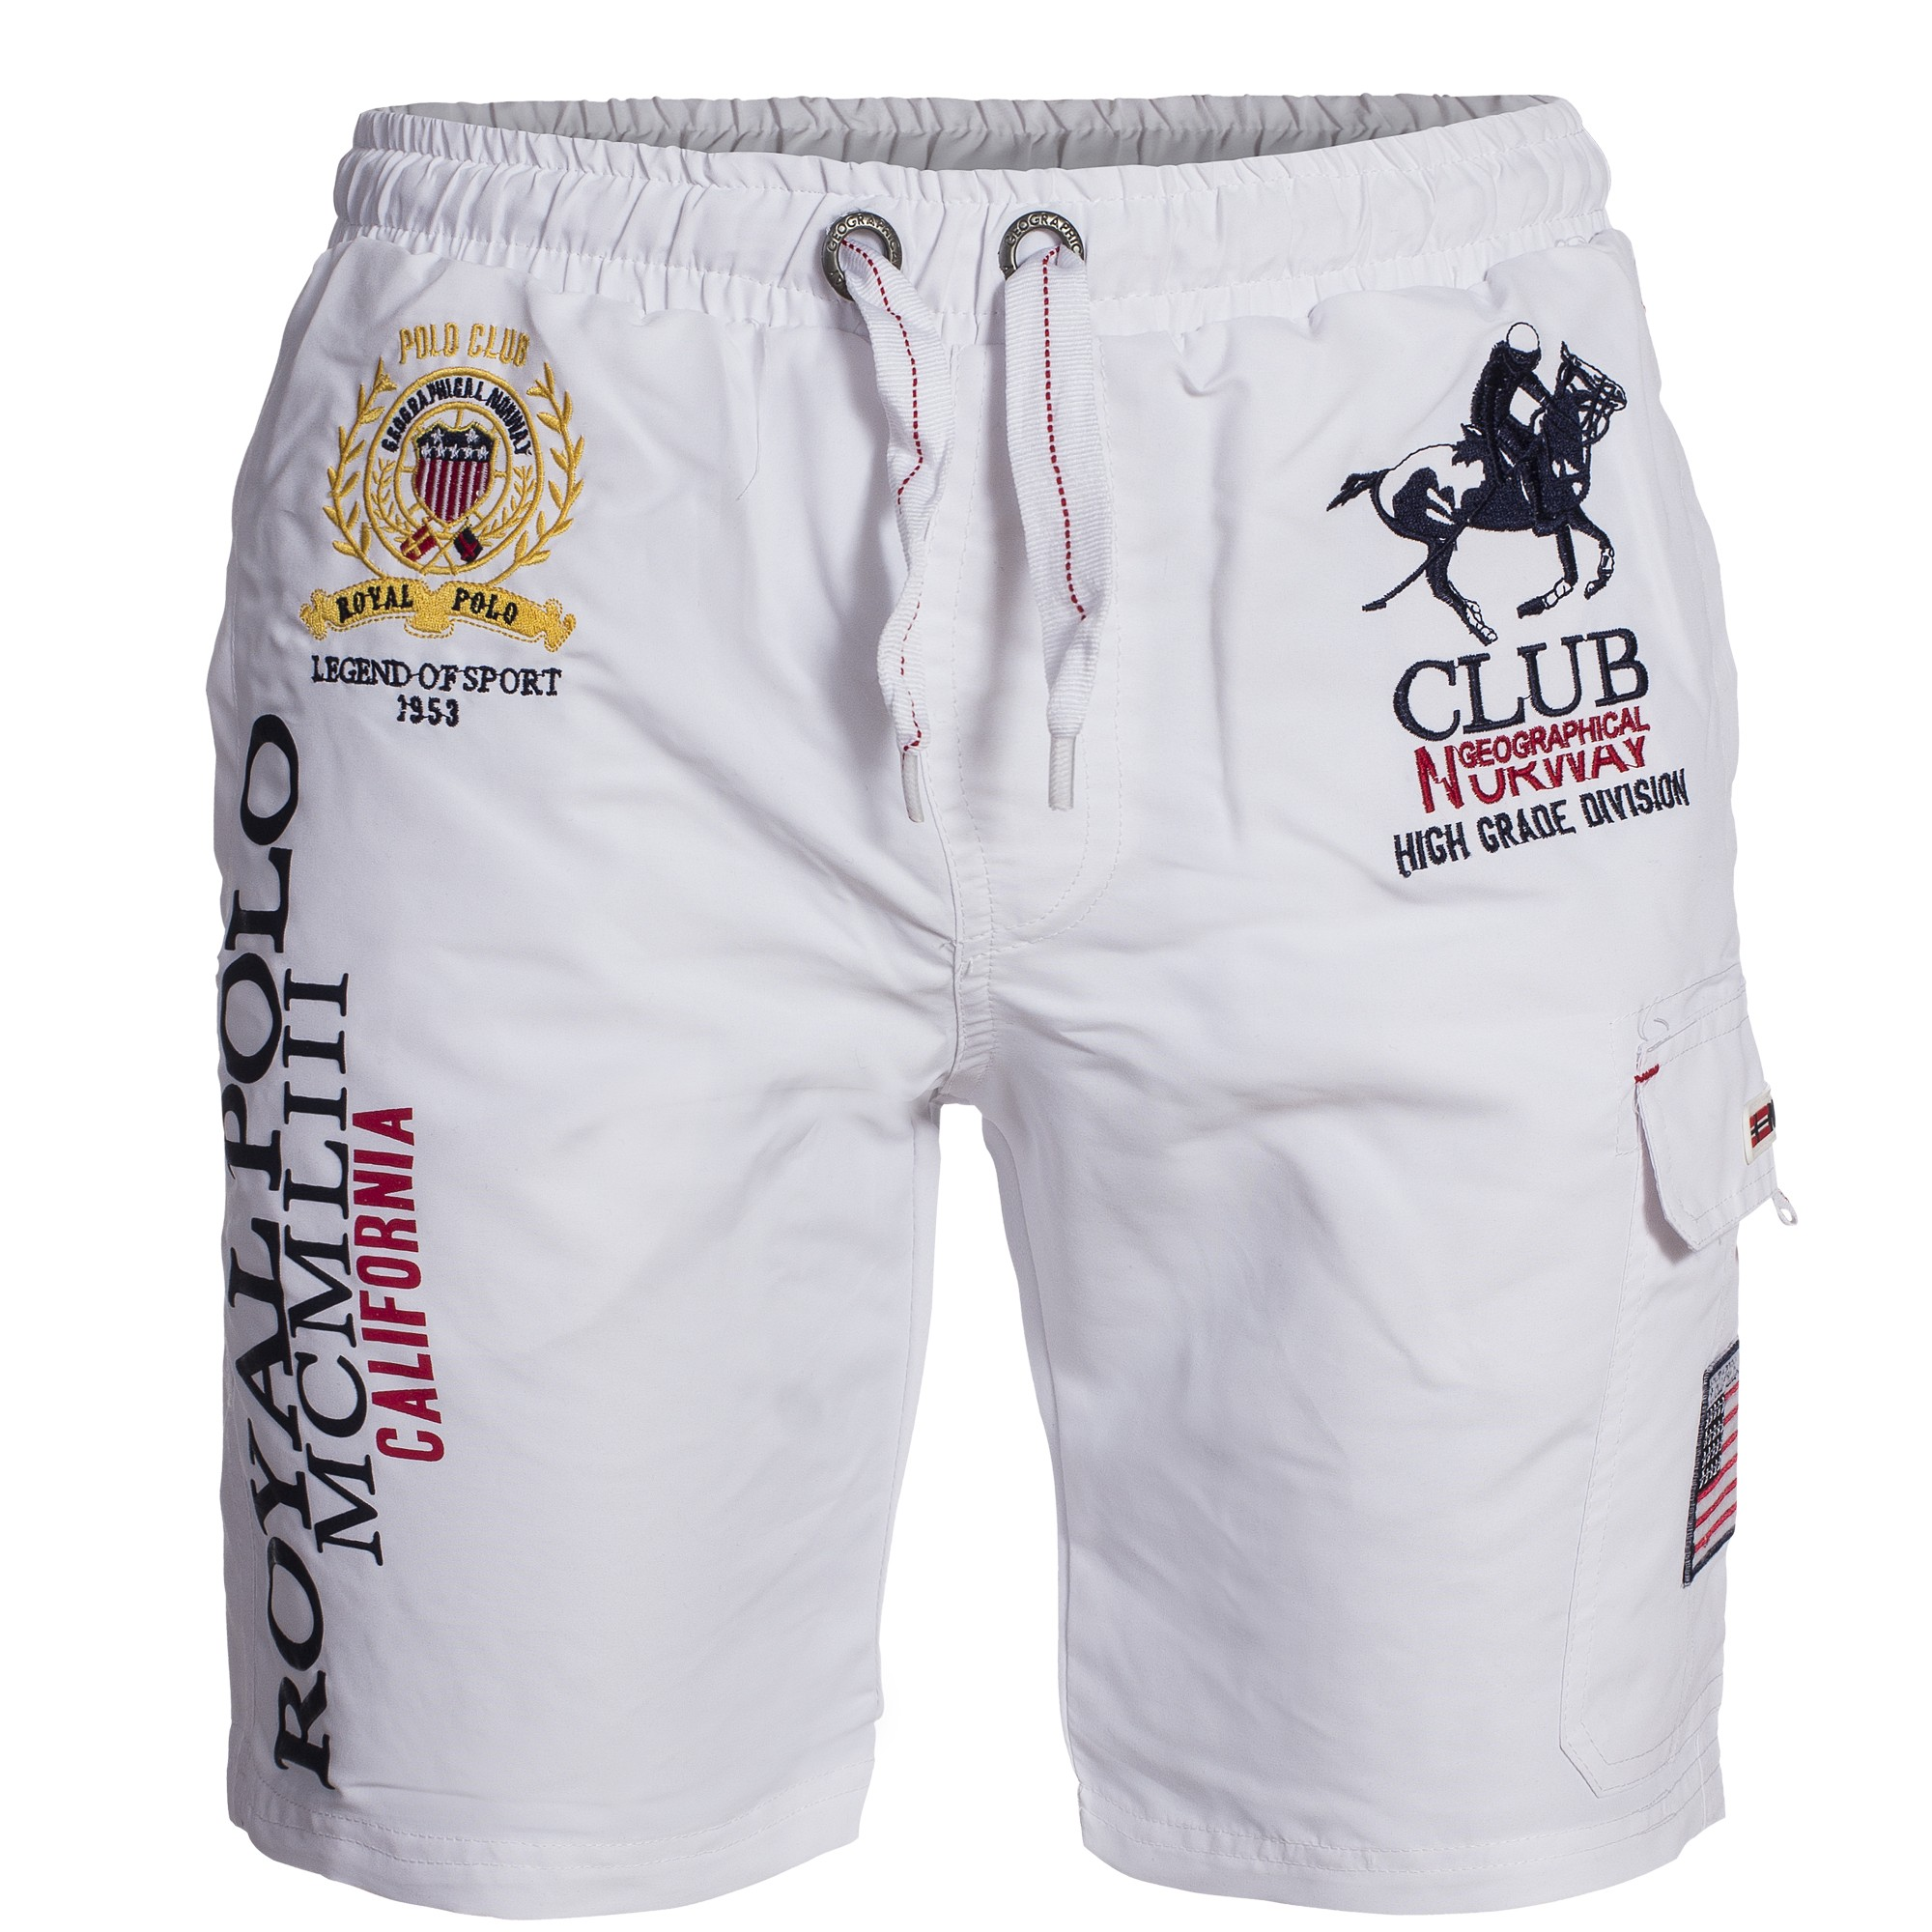 Geographical-Norway-QUOYAL-Badehose-Badeshort-Short-Gr-S-XXXL